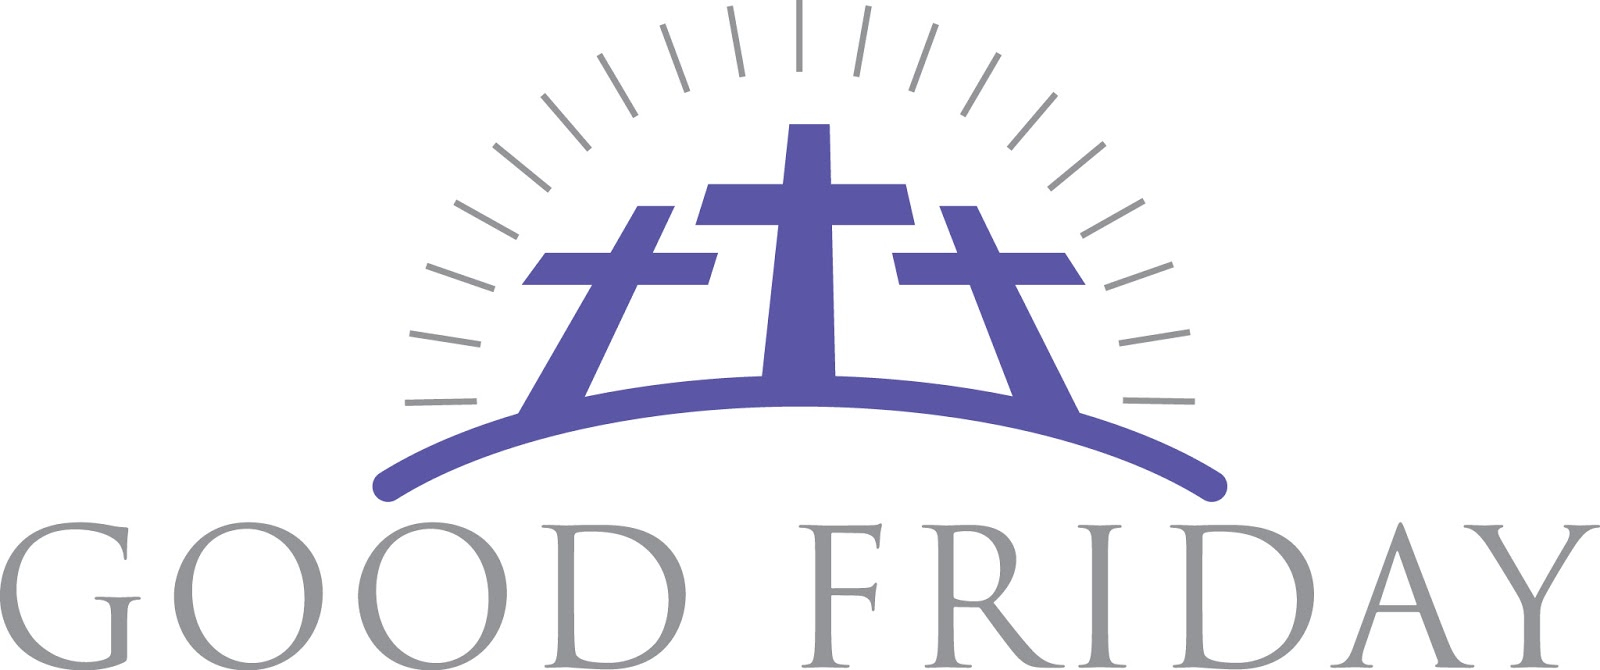 1600x670 Good Friday Clipart Beautiful Clipart Of Good Friday 2017